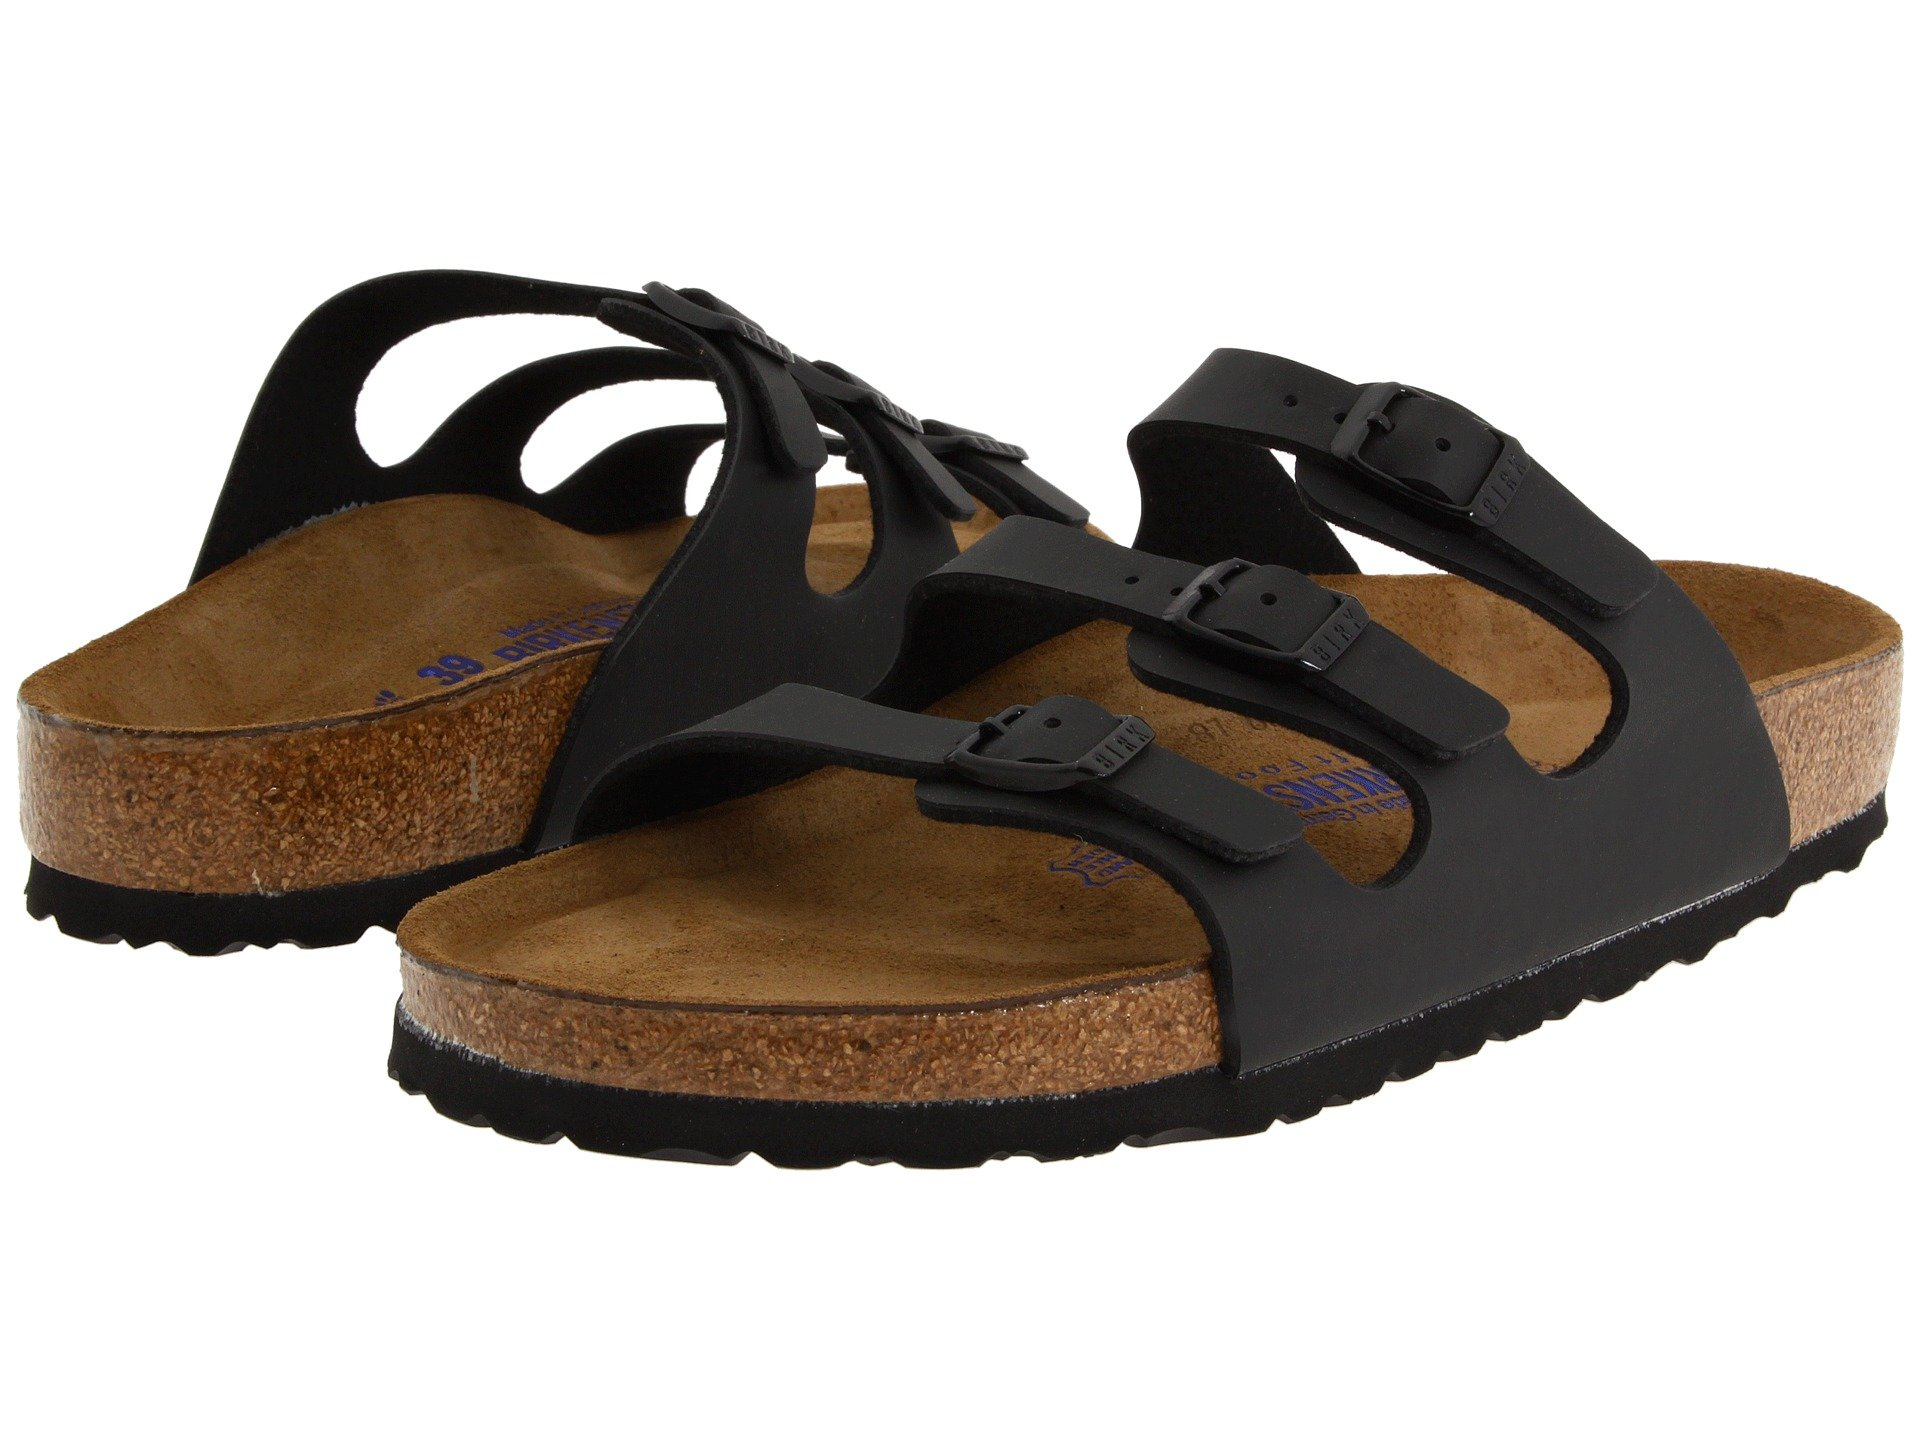 Birkenstock Florida Soft Footbed Birko Flor At Zappos Com